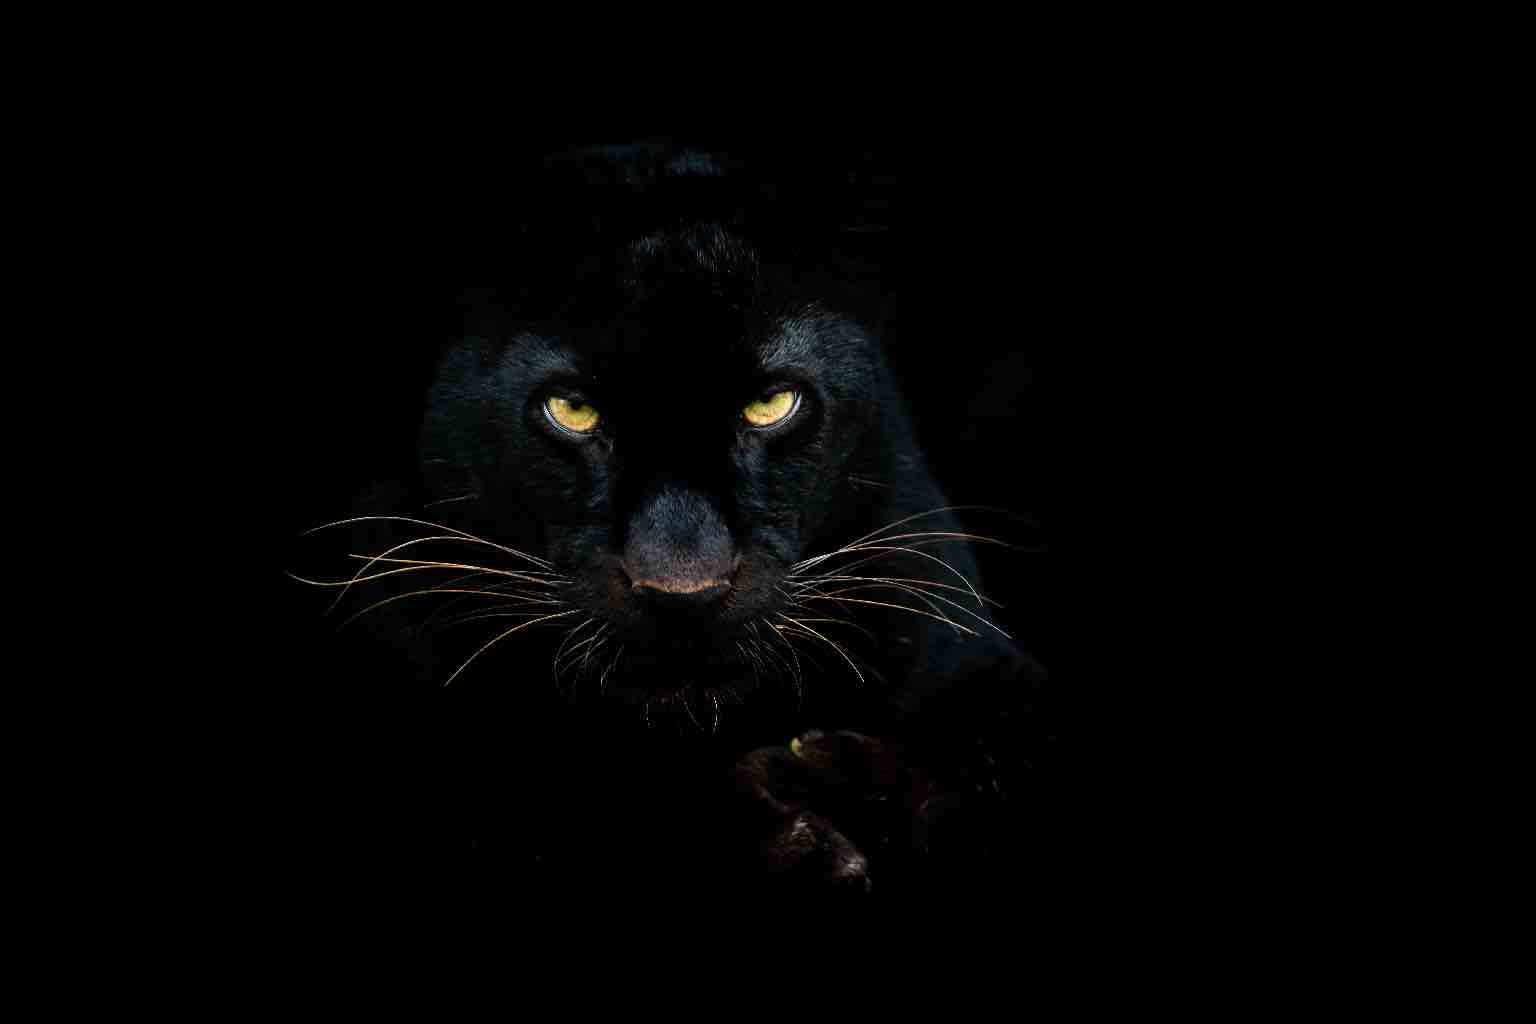 An ominous black panther scowls at us from a black background